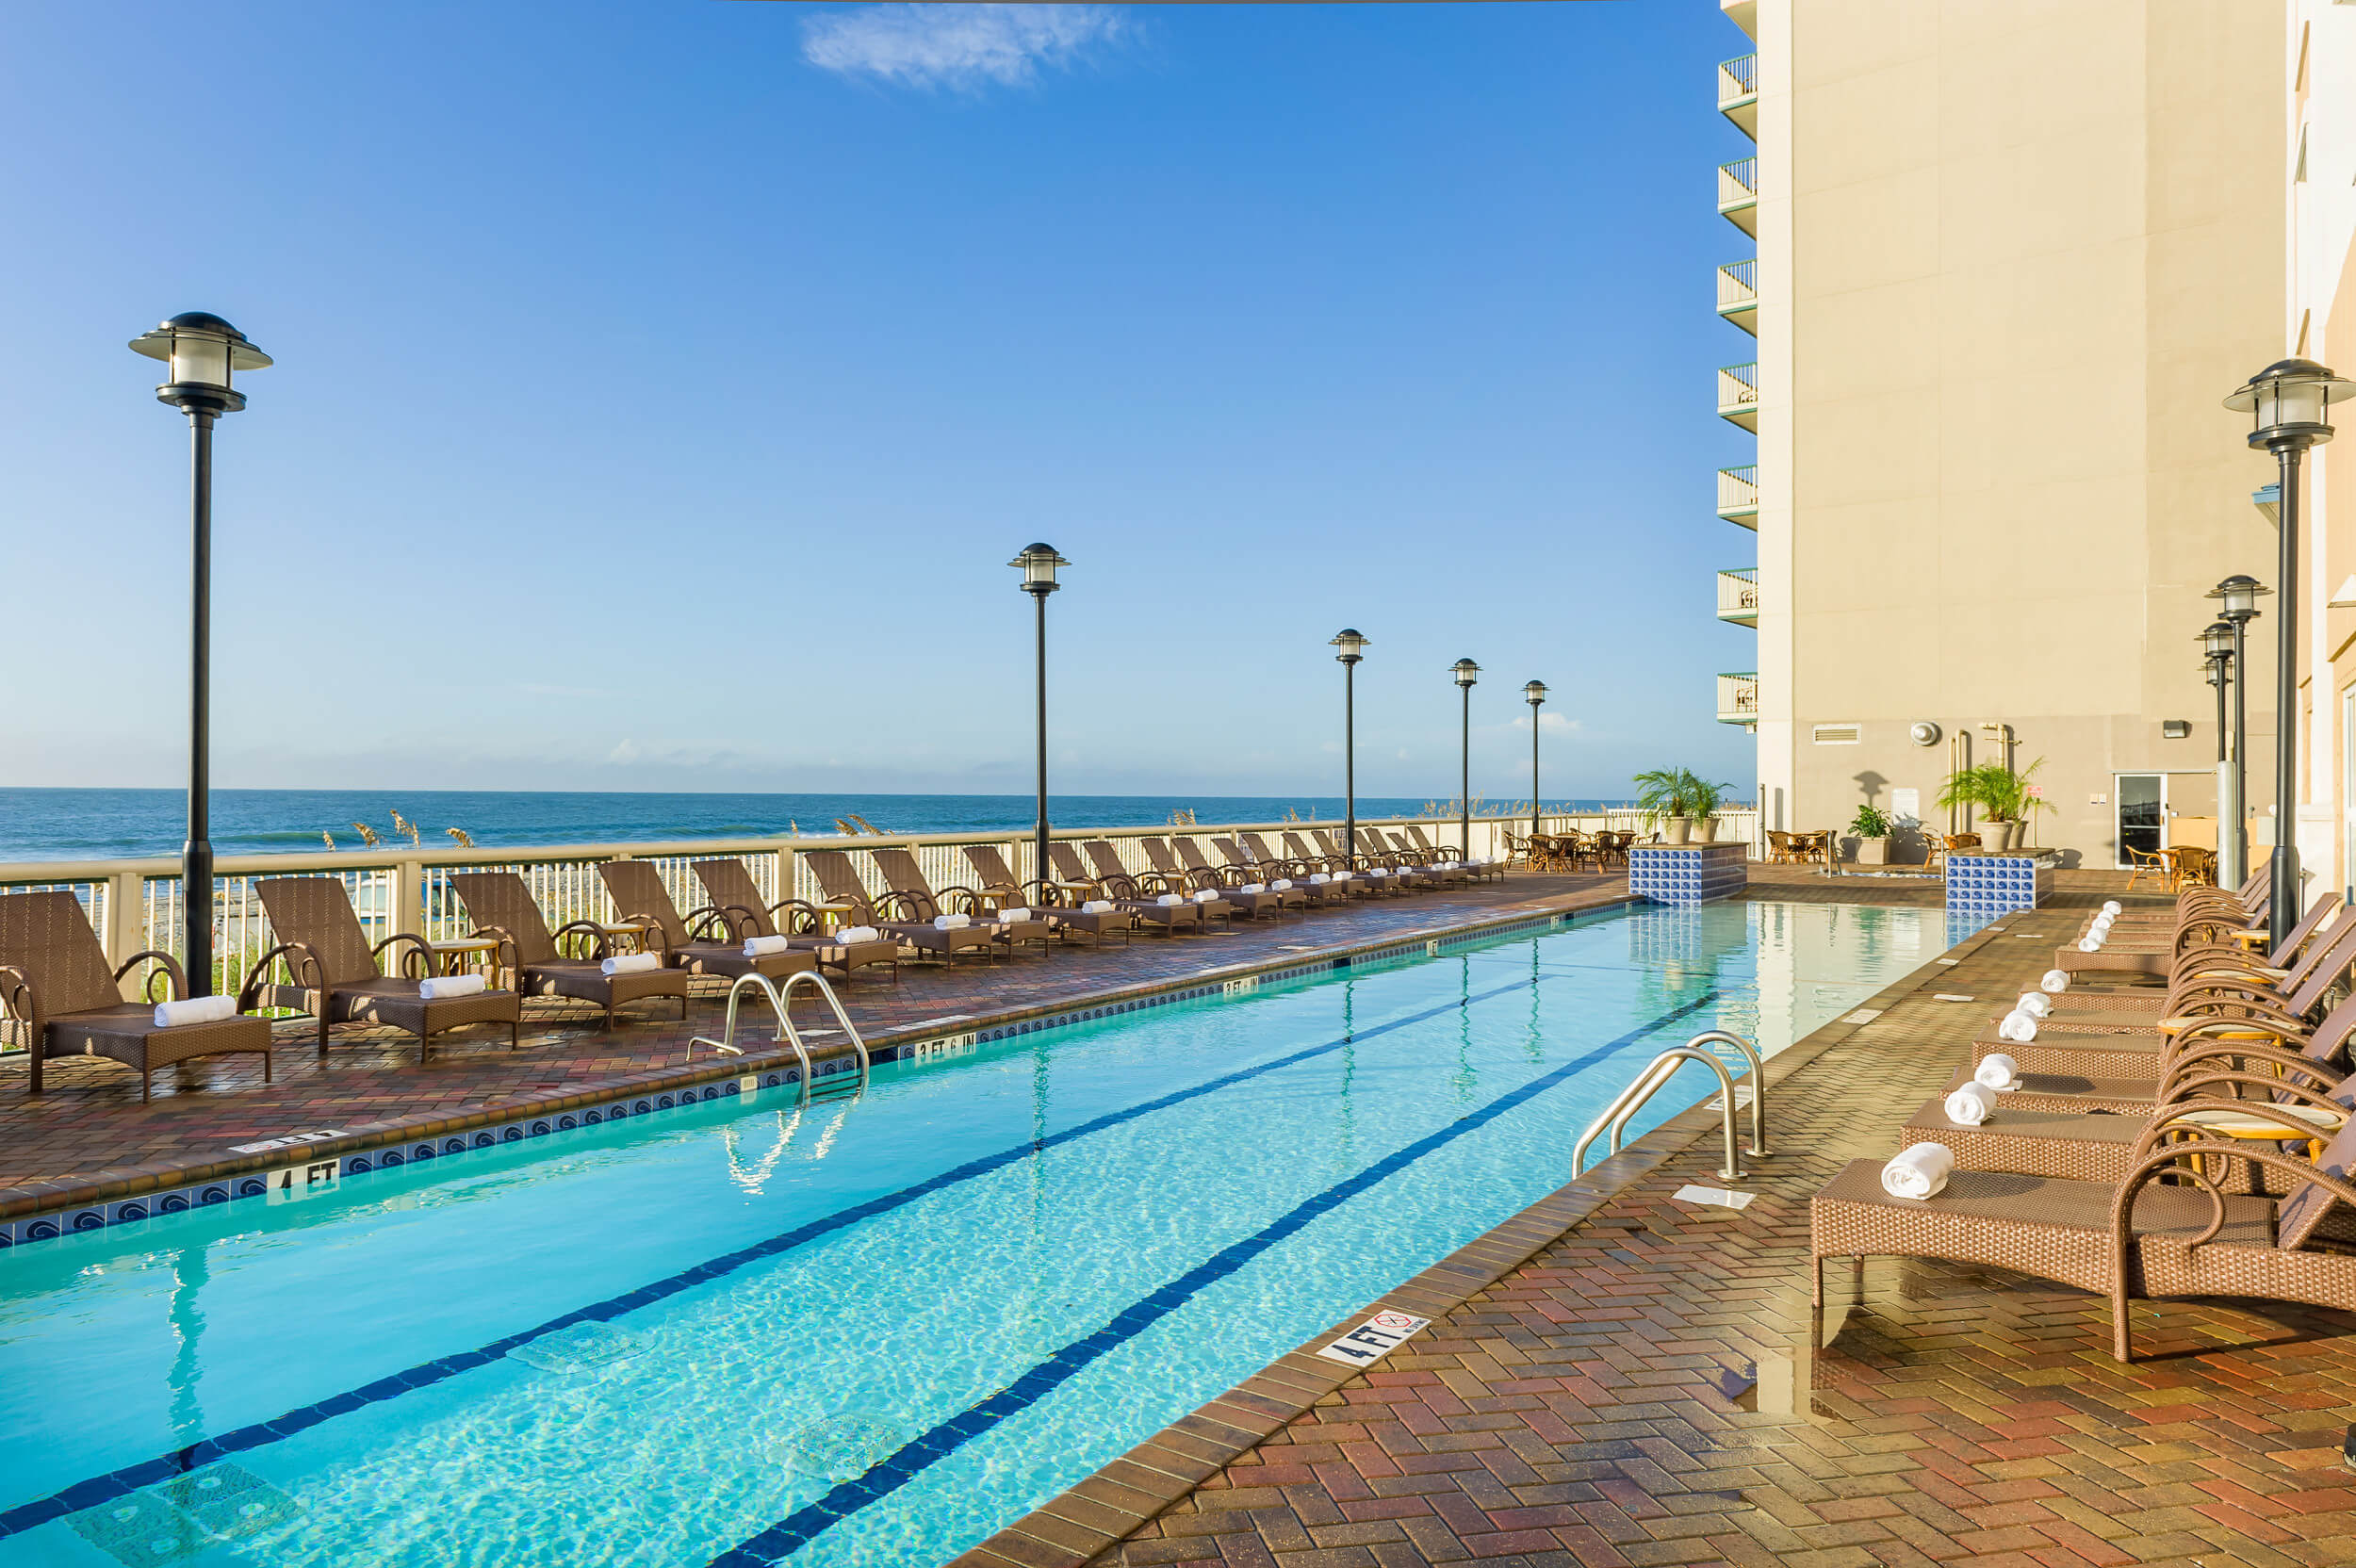 Heated outdoor pool with lounge chairs overlooking beach | Westgate Myrtle Beach Oceanfront Resort